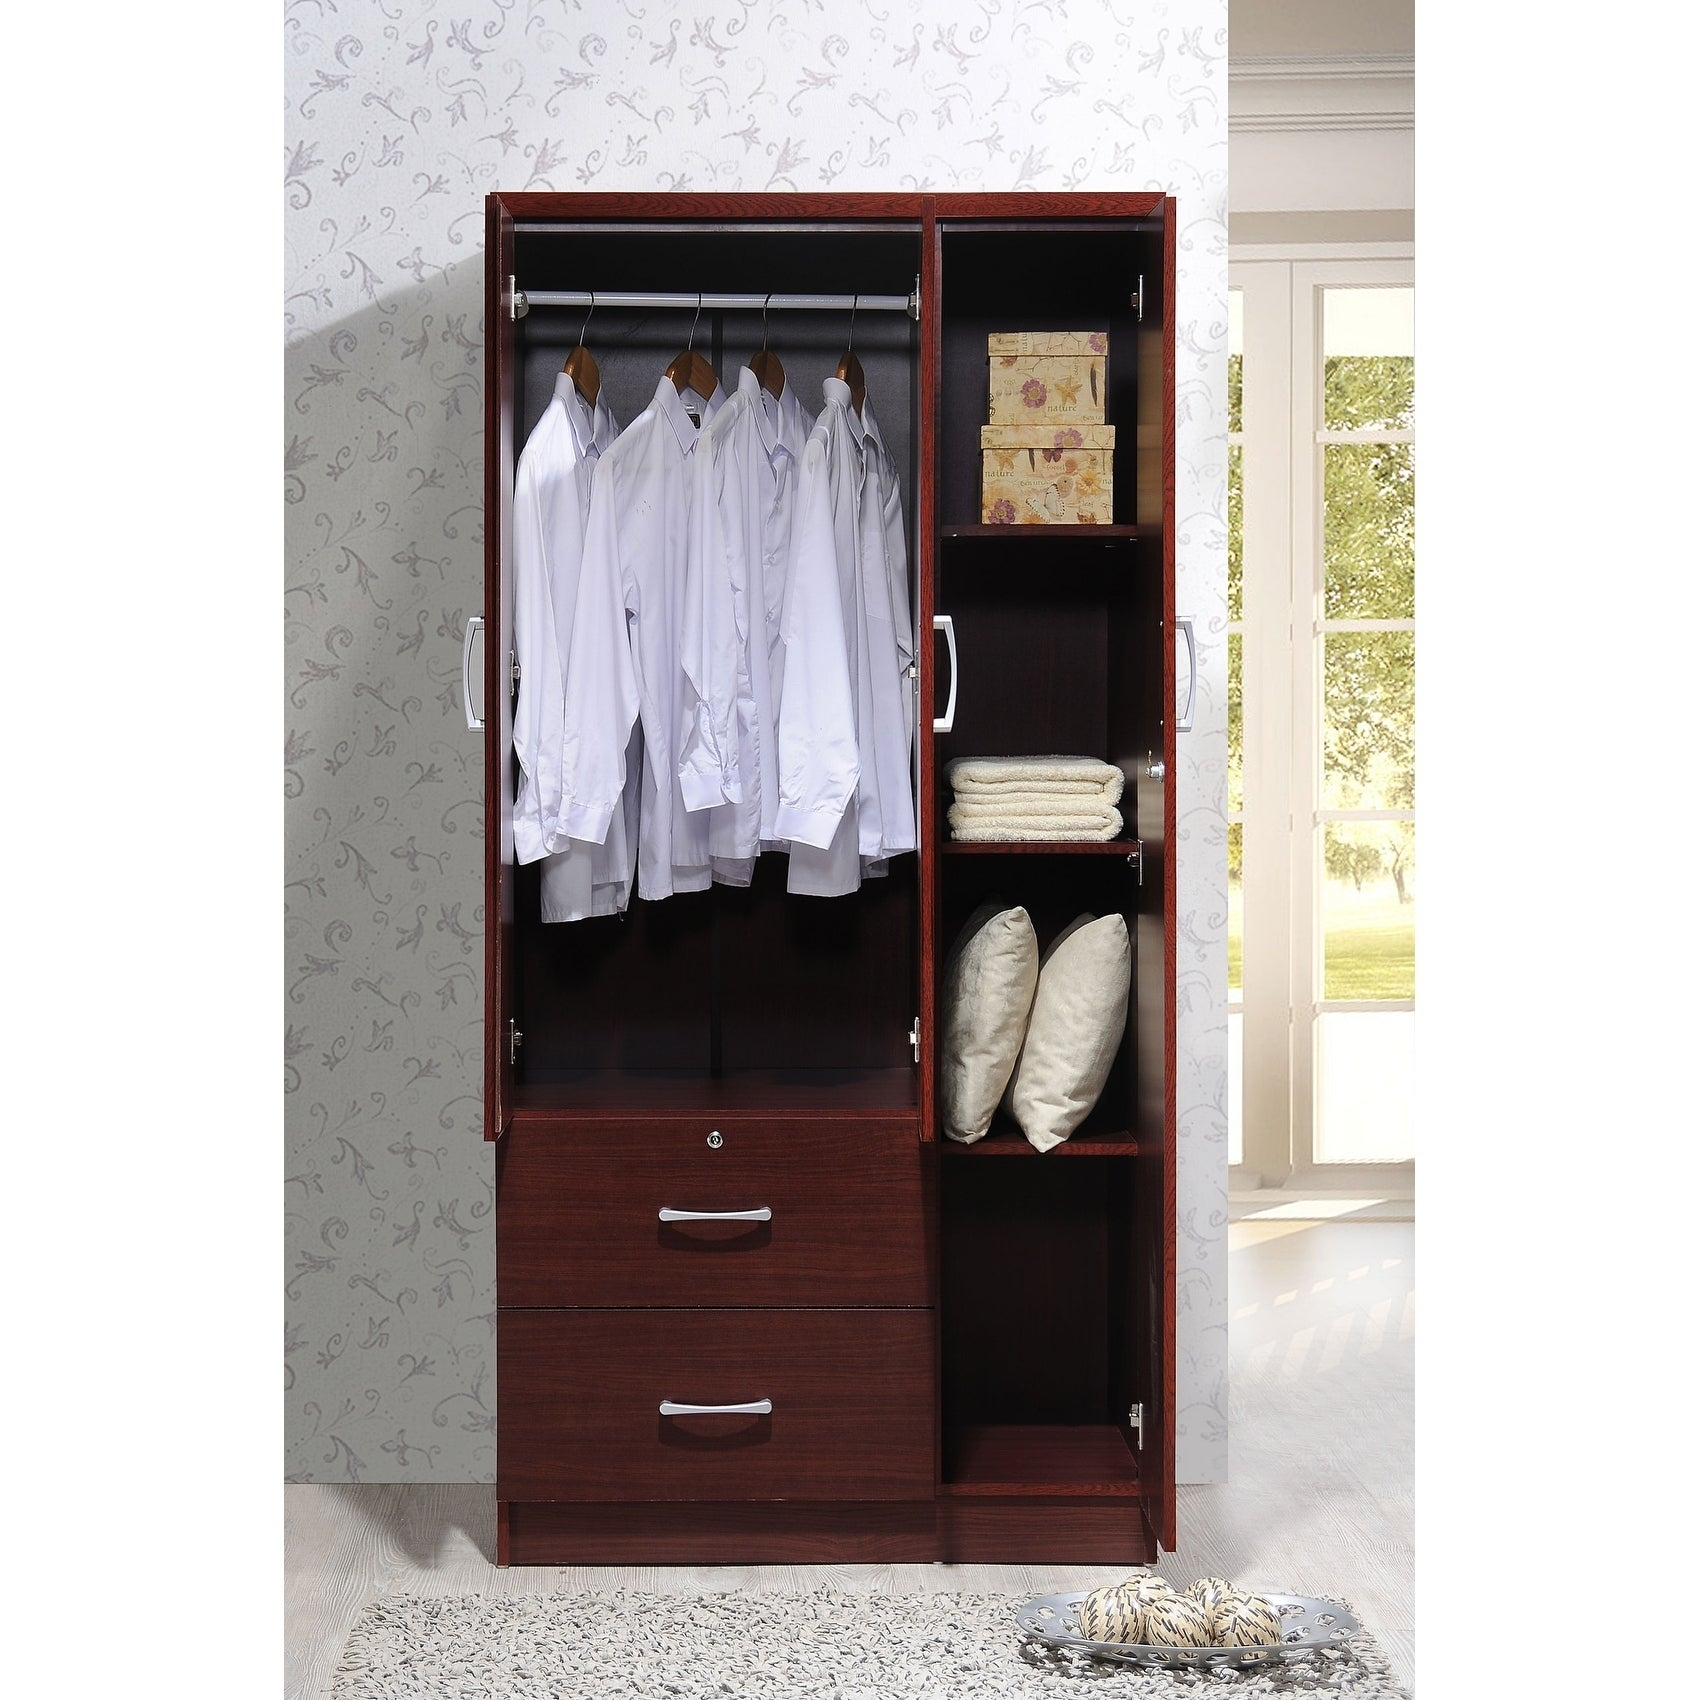 Wide Armoire With 2 Drawers, Clothing Rod And 3 Shelves   Free Shipping  Today   Overstock.com   17961058